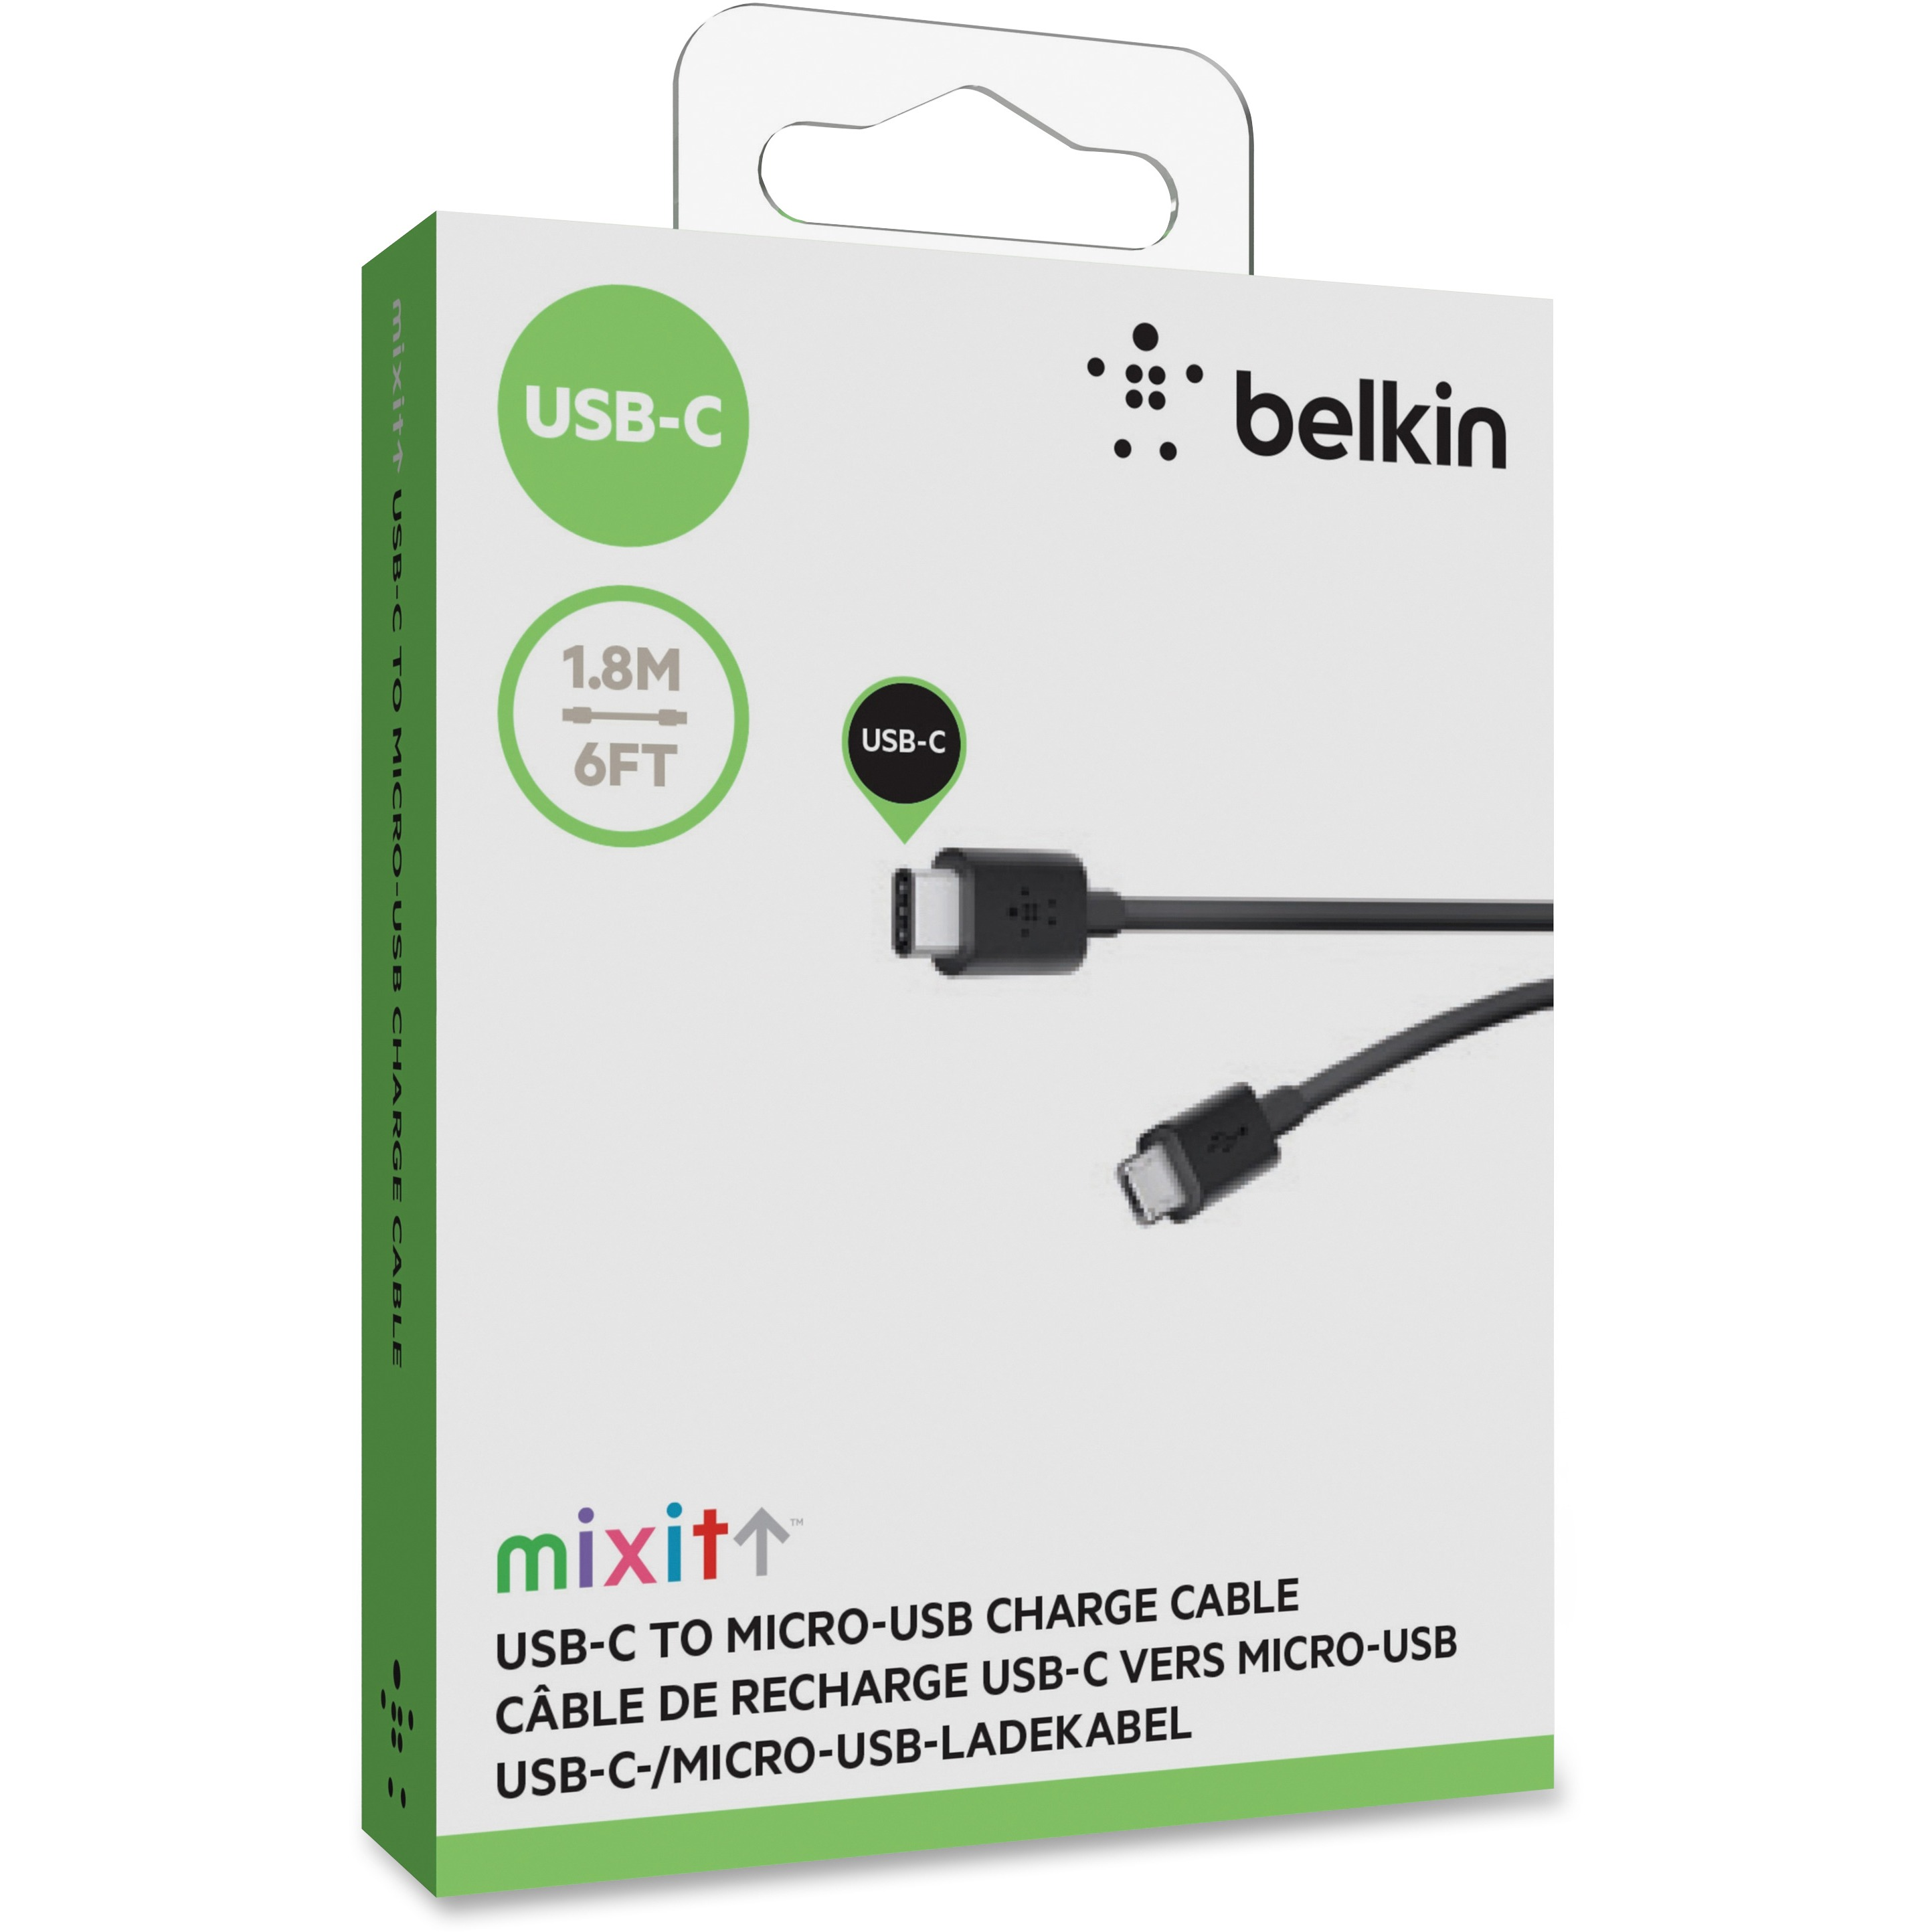 Belkin USB-C 2.0 to microUSB Charge and Sync Cable, 6\'